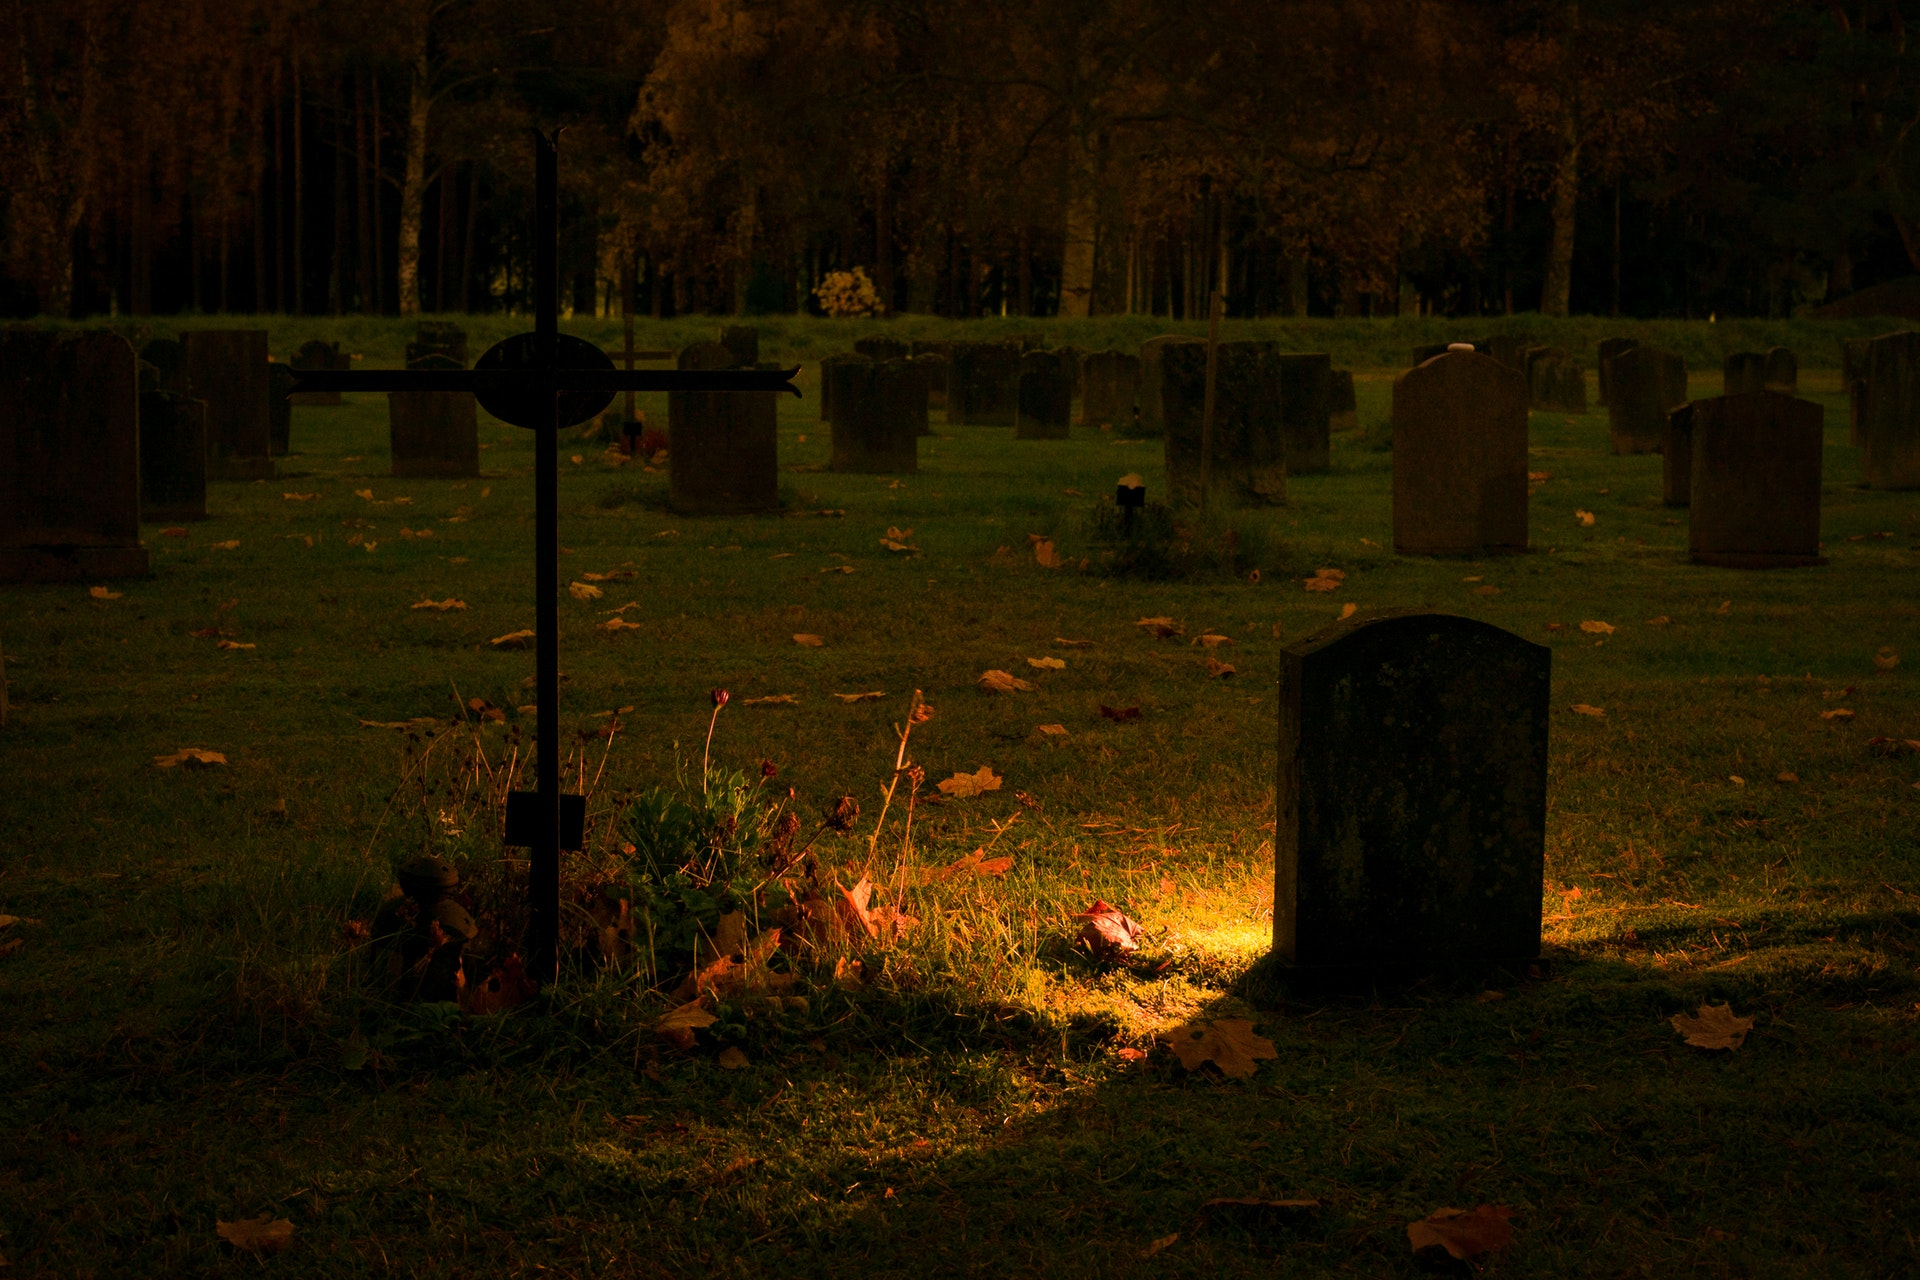 Lafayette Memorial Park, Fayetteville, N.C. cemetery, cancels Halloween-themed movie night